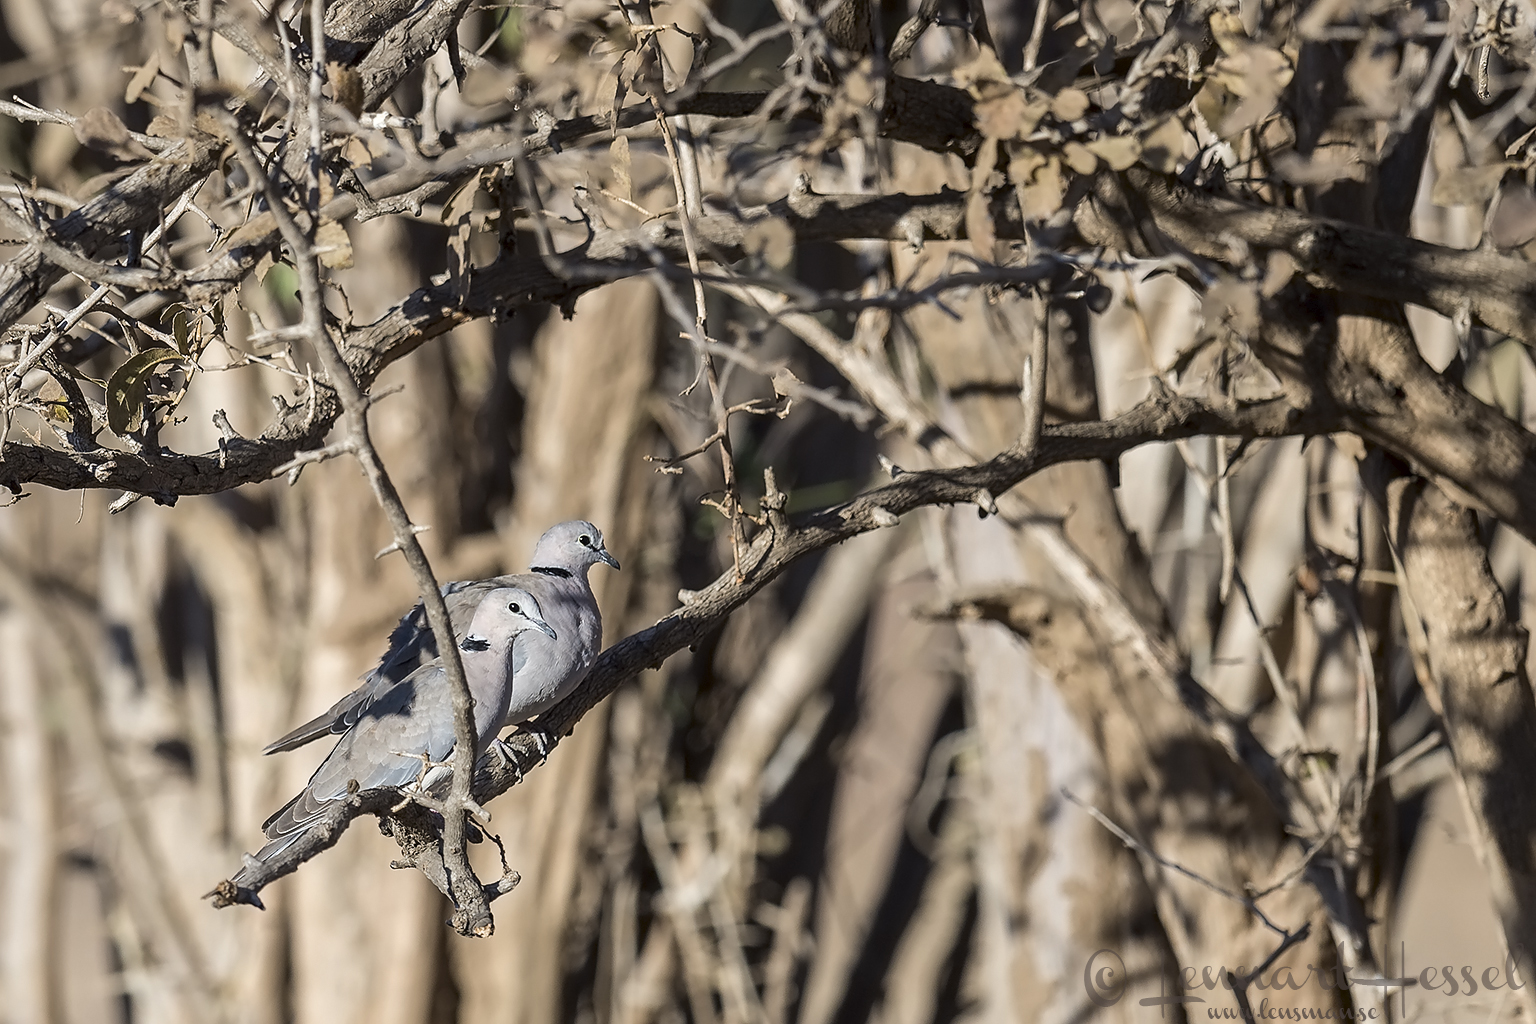 Cape Turtle-doves Mana Pools National Park Zimbabwe